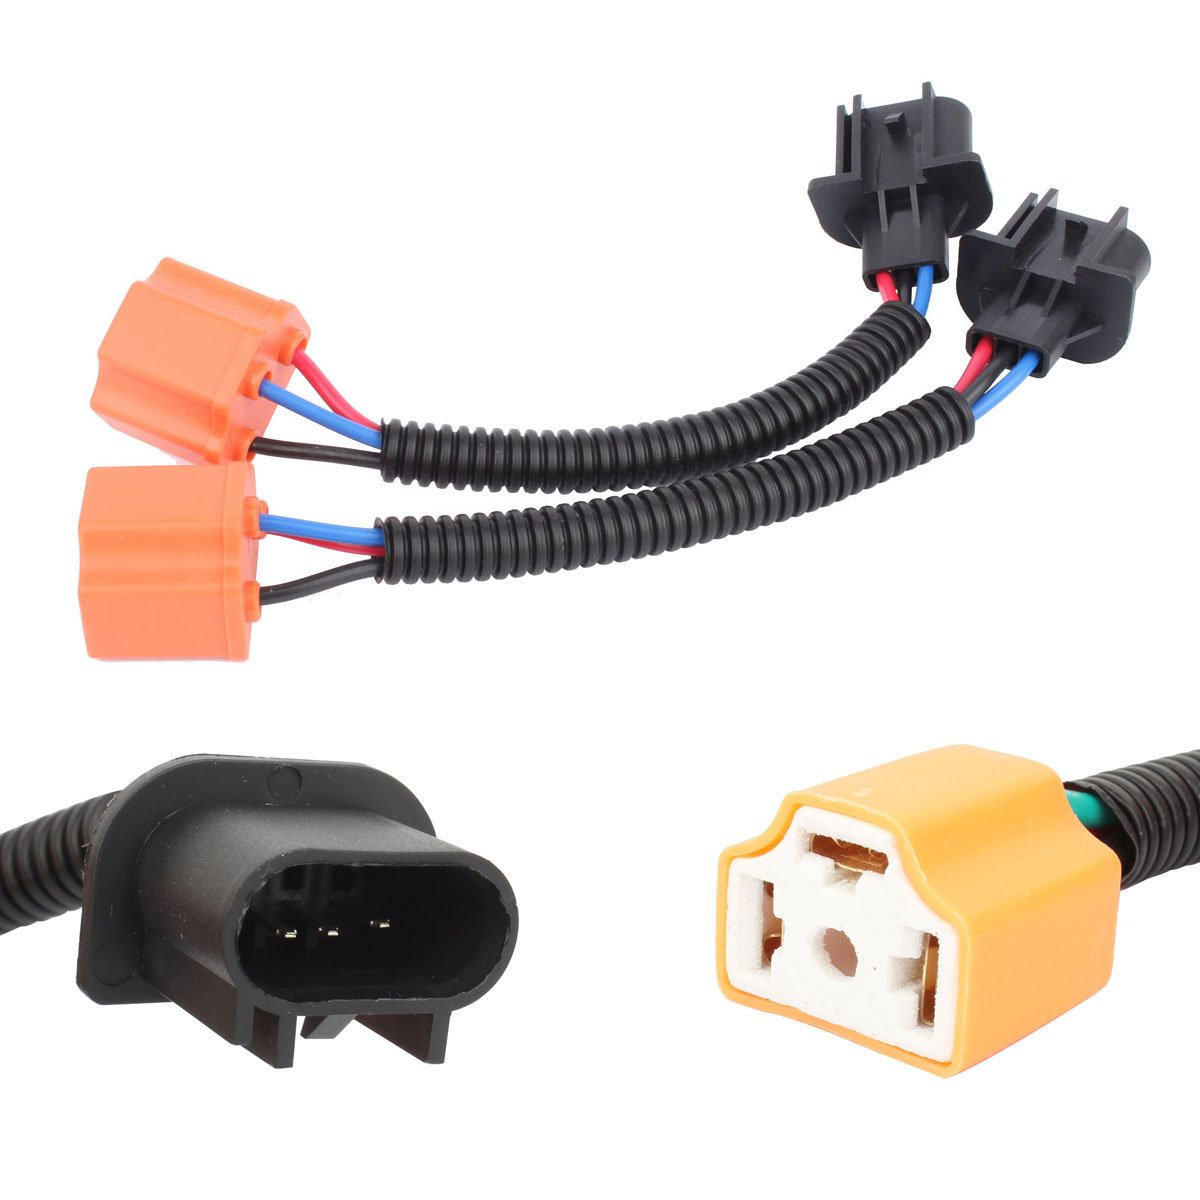 H11-H7 Extension 5inch TOMALL H11 to H7 LED Headlight Retrofit Wiring Harness Connector Socket Adapter 12cm